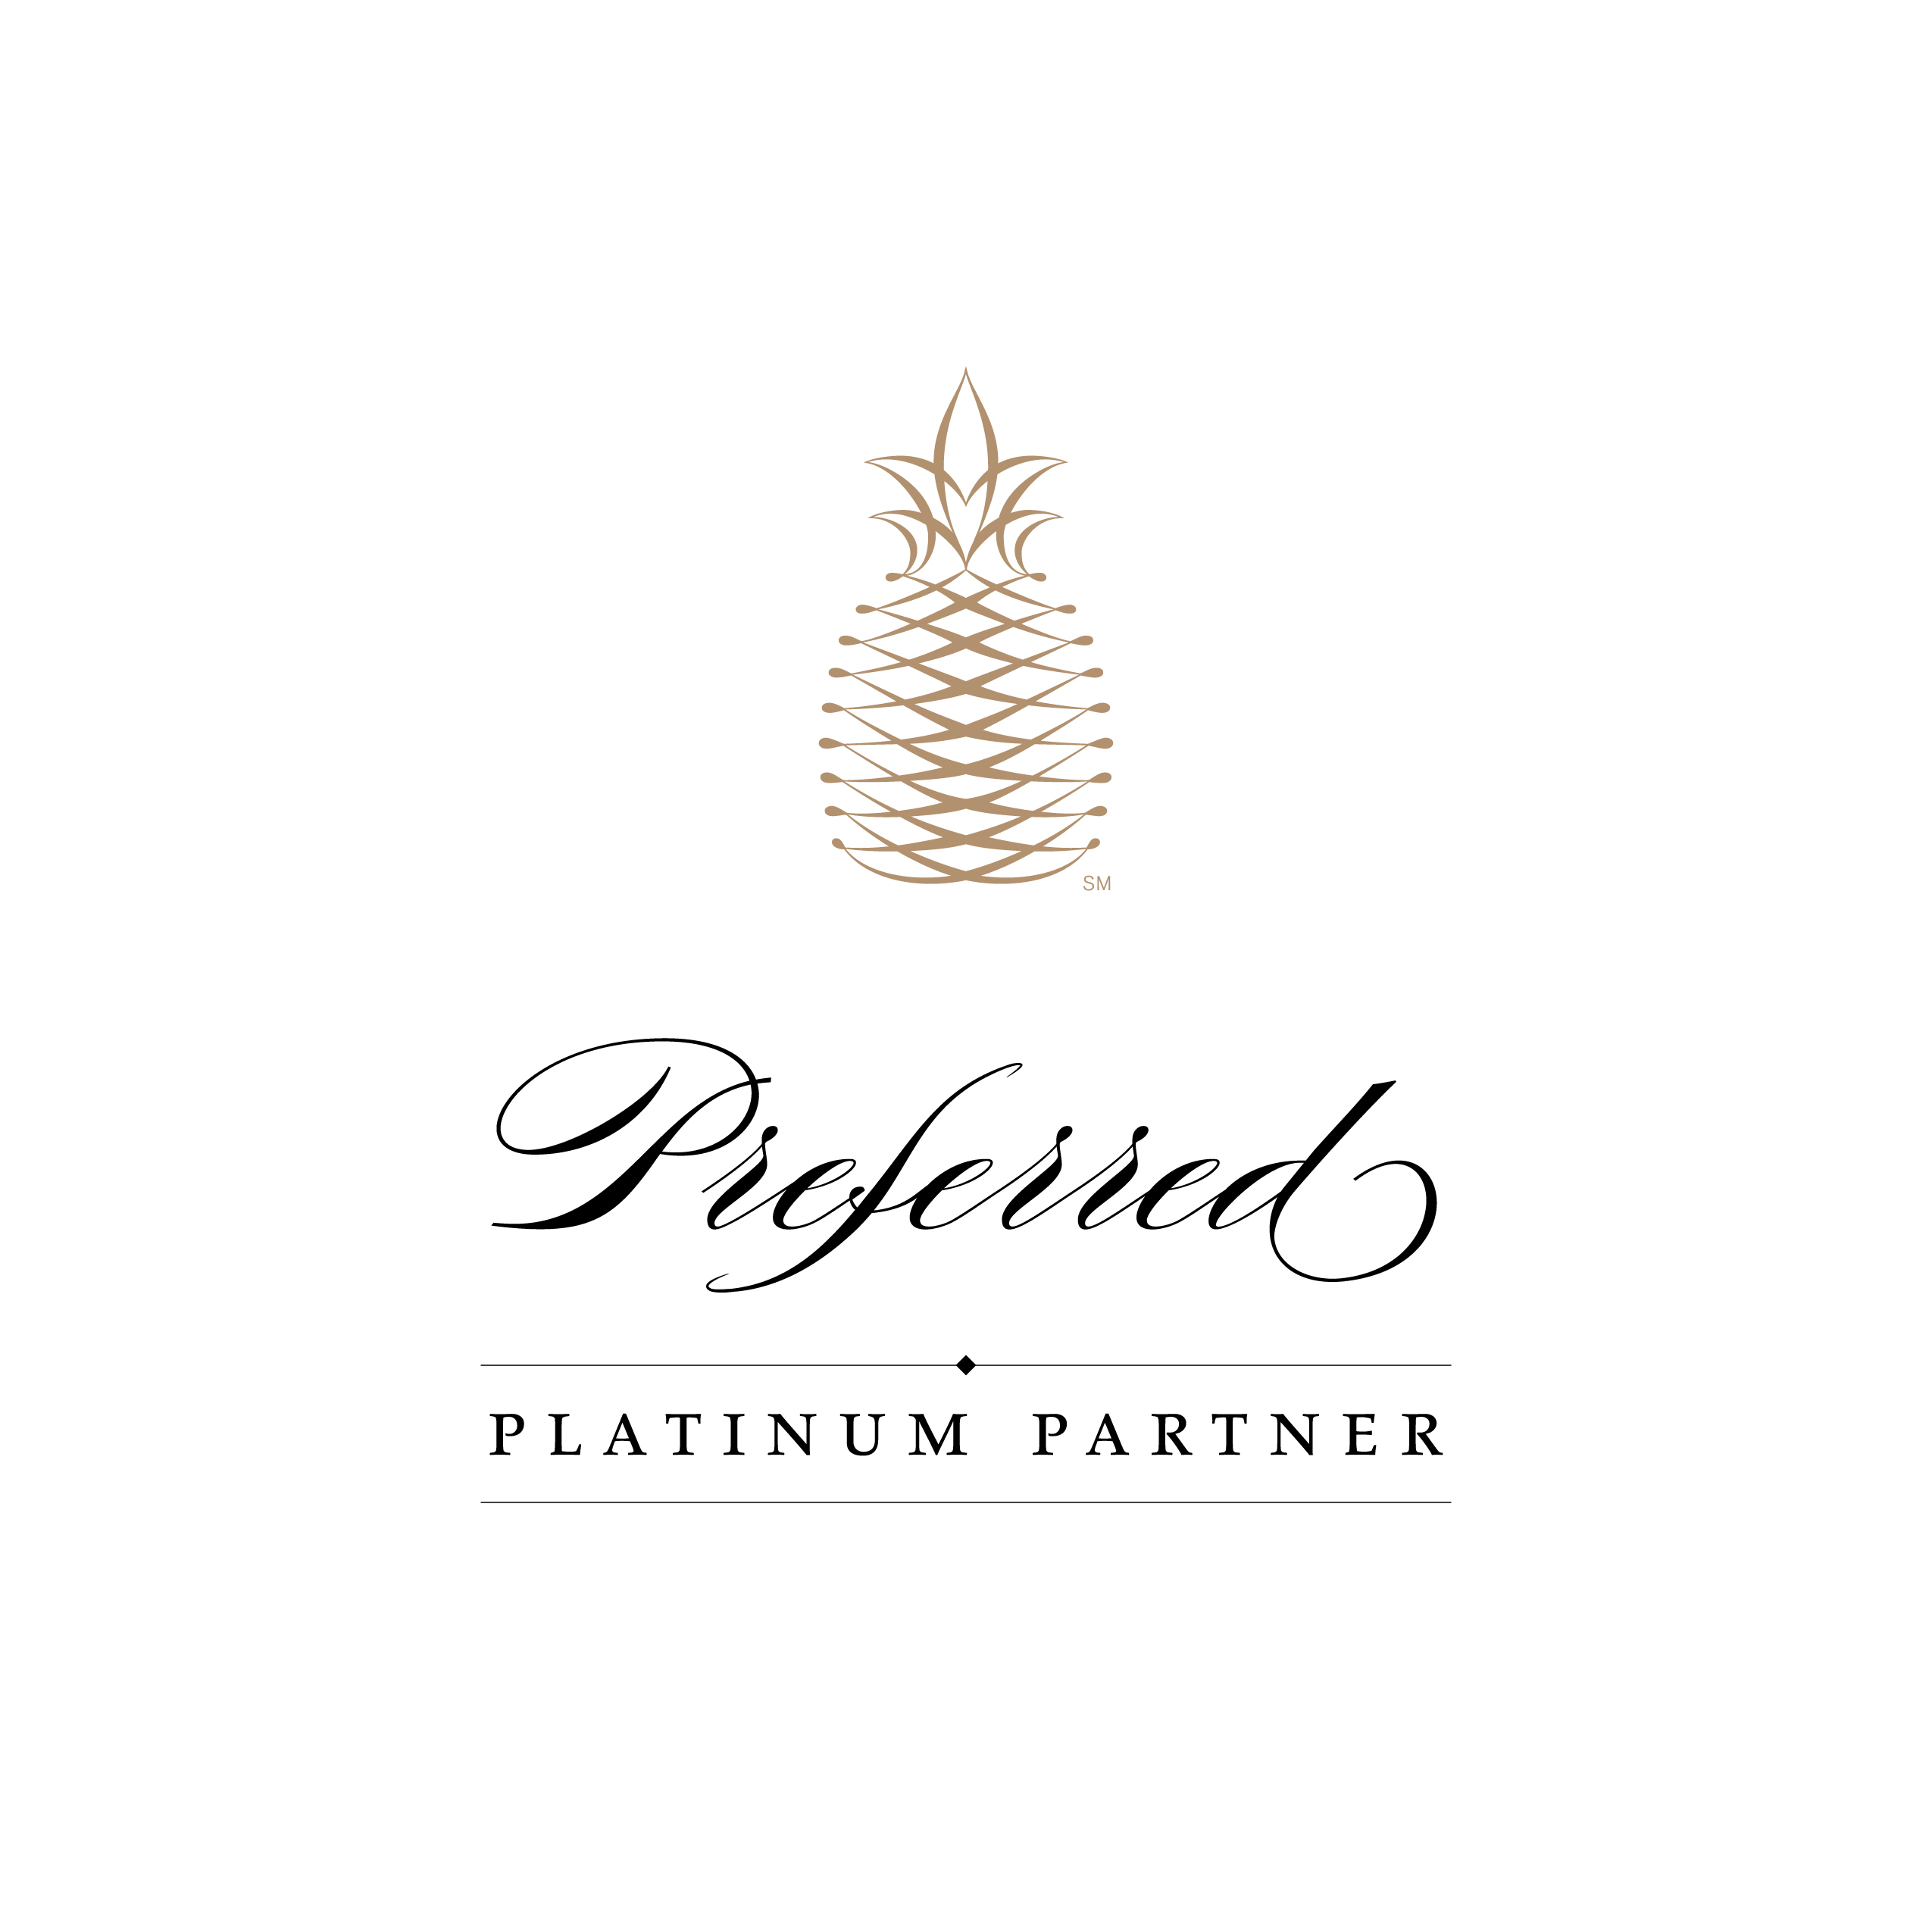 Preferred Platinum Partner Logo